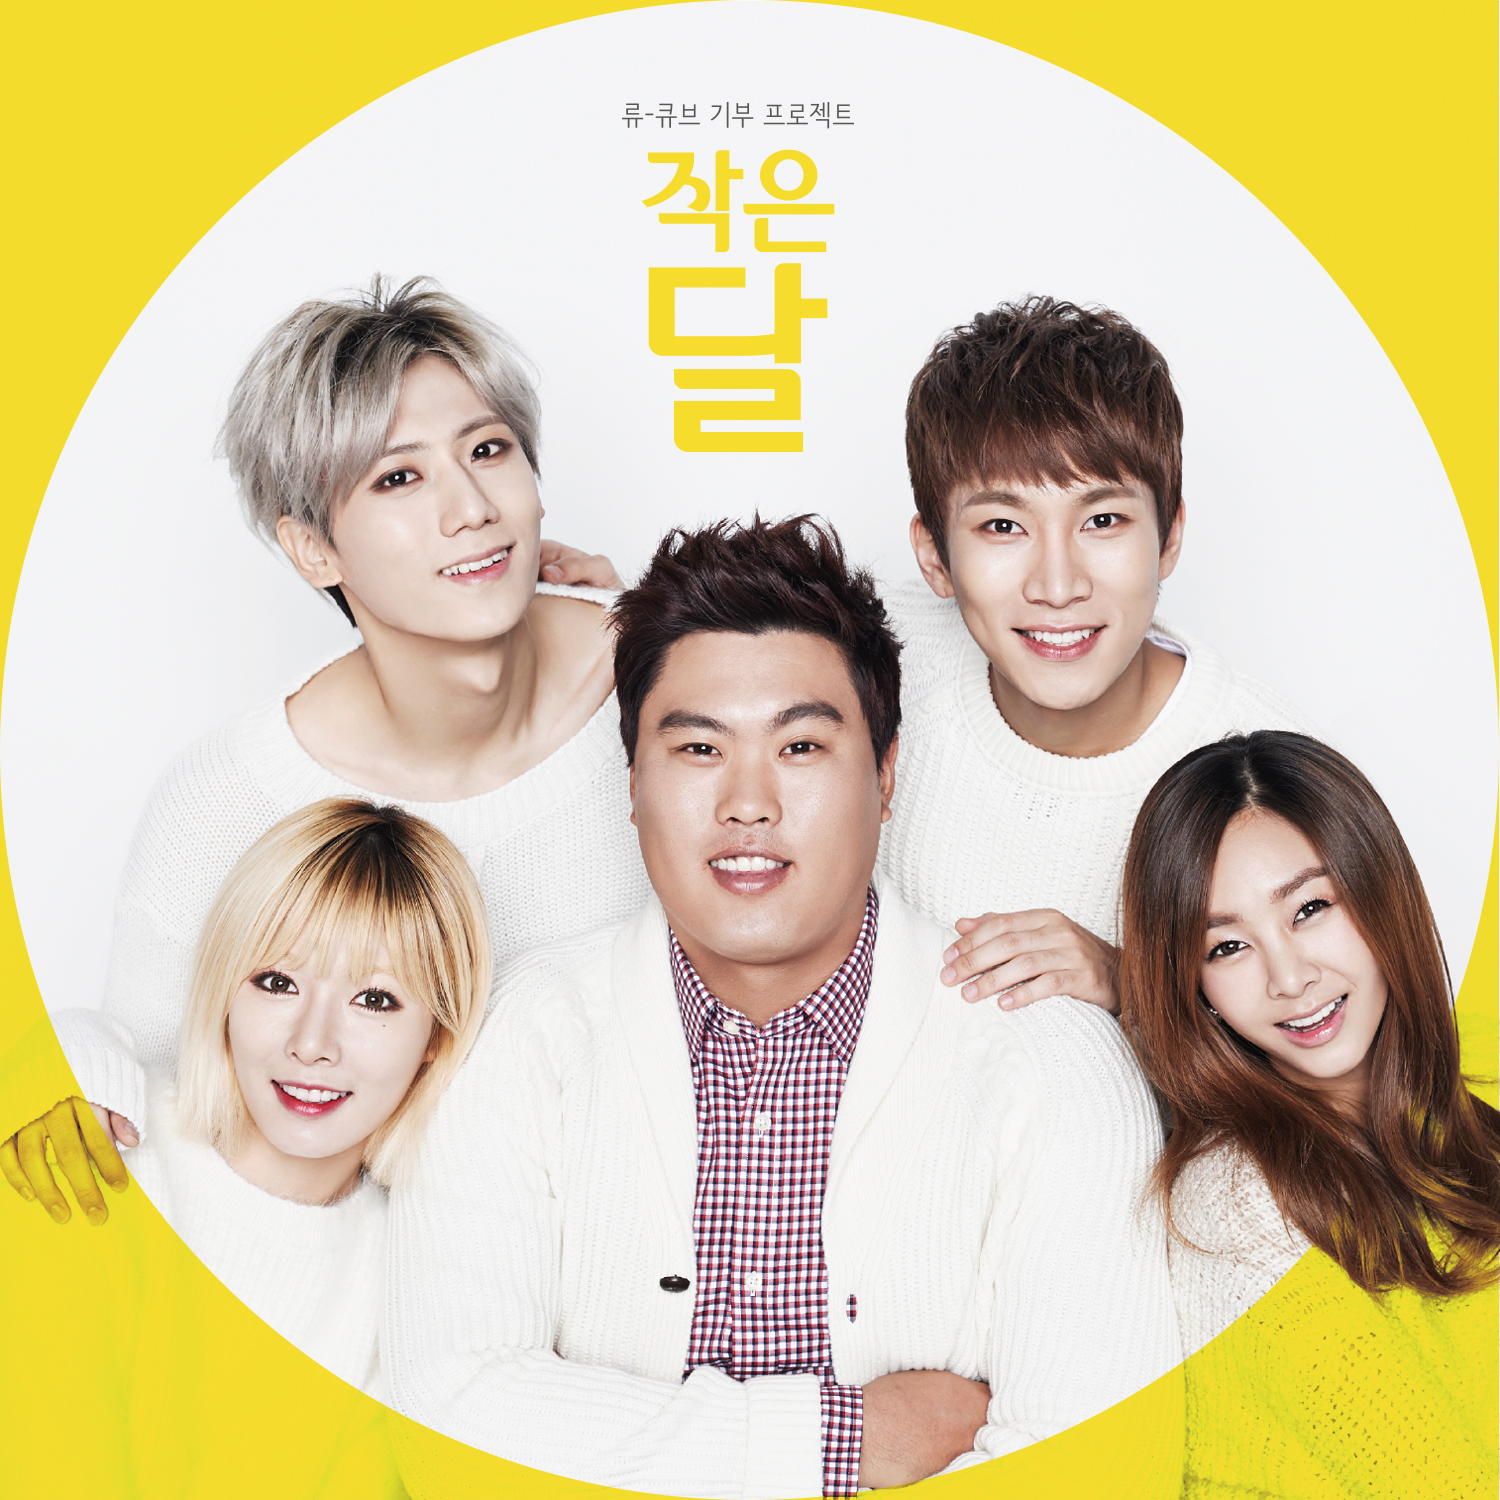 """Dodgers' pitcher Ryu Hyun-jin's second song with Cube Entertainment artists is called """"Little Moon."""" (Newsis)"""